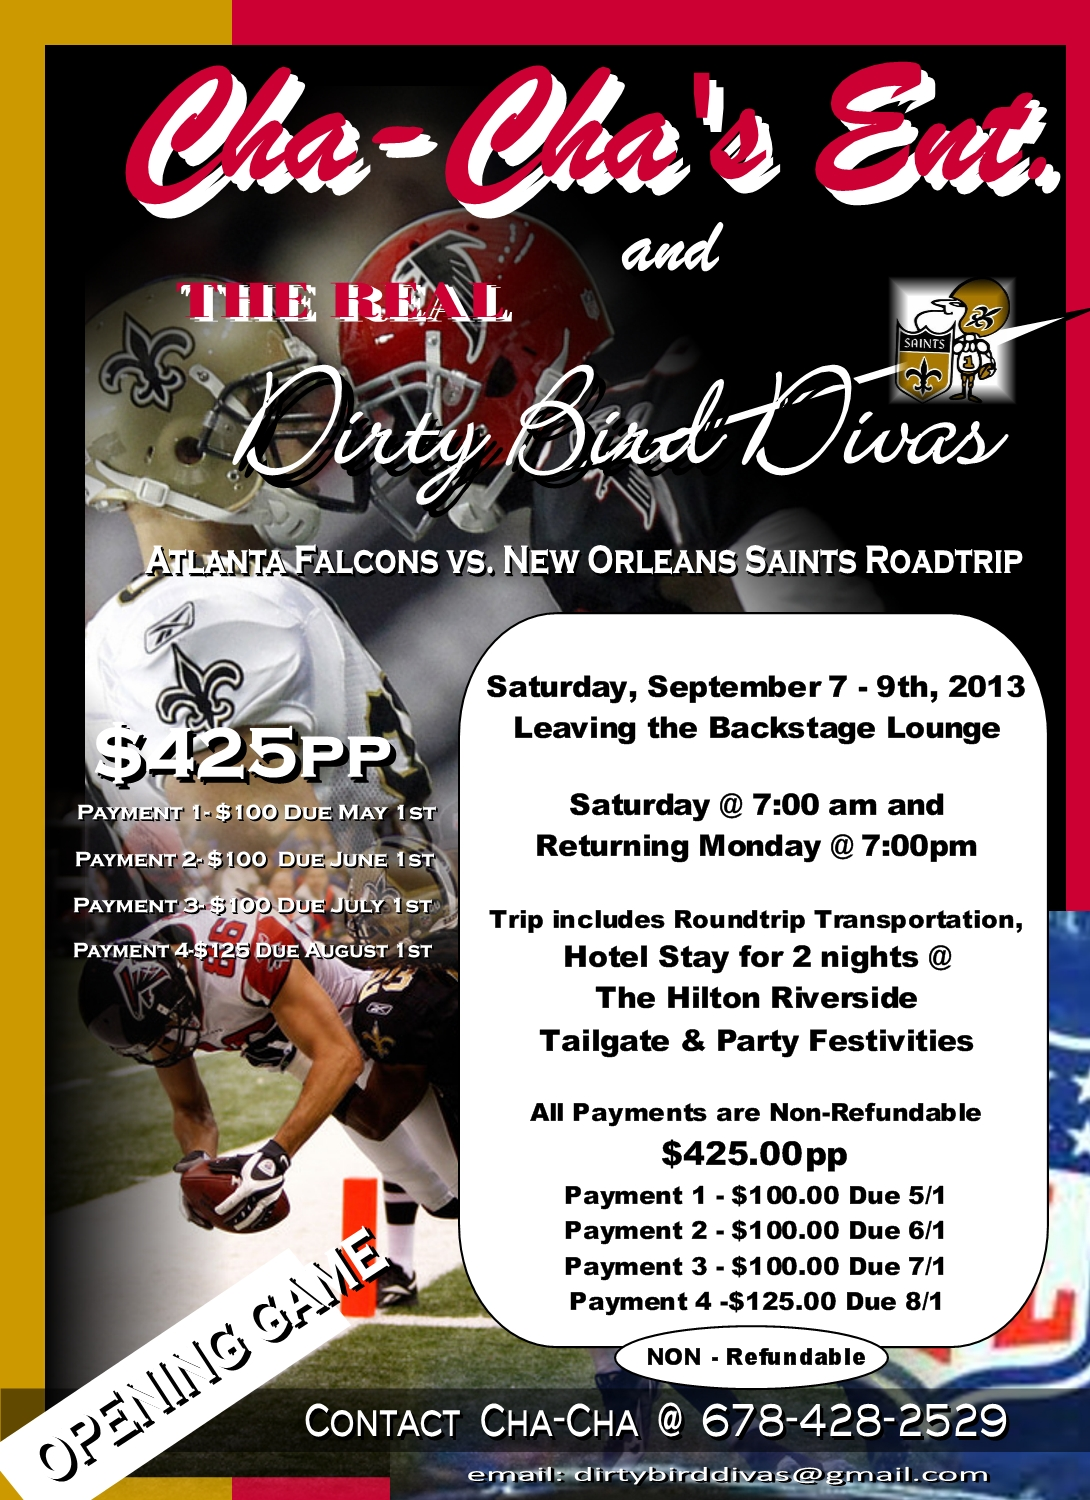 CHA-CHA ENT & DIRTY BIRD DIVAS ROADTRIP TO NEW ORLEANS